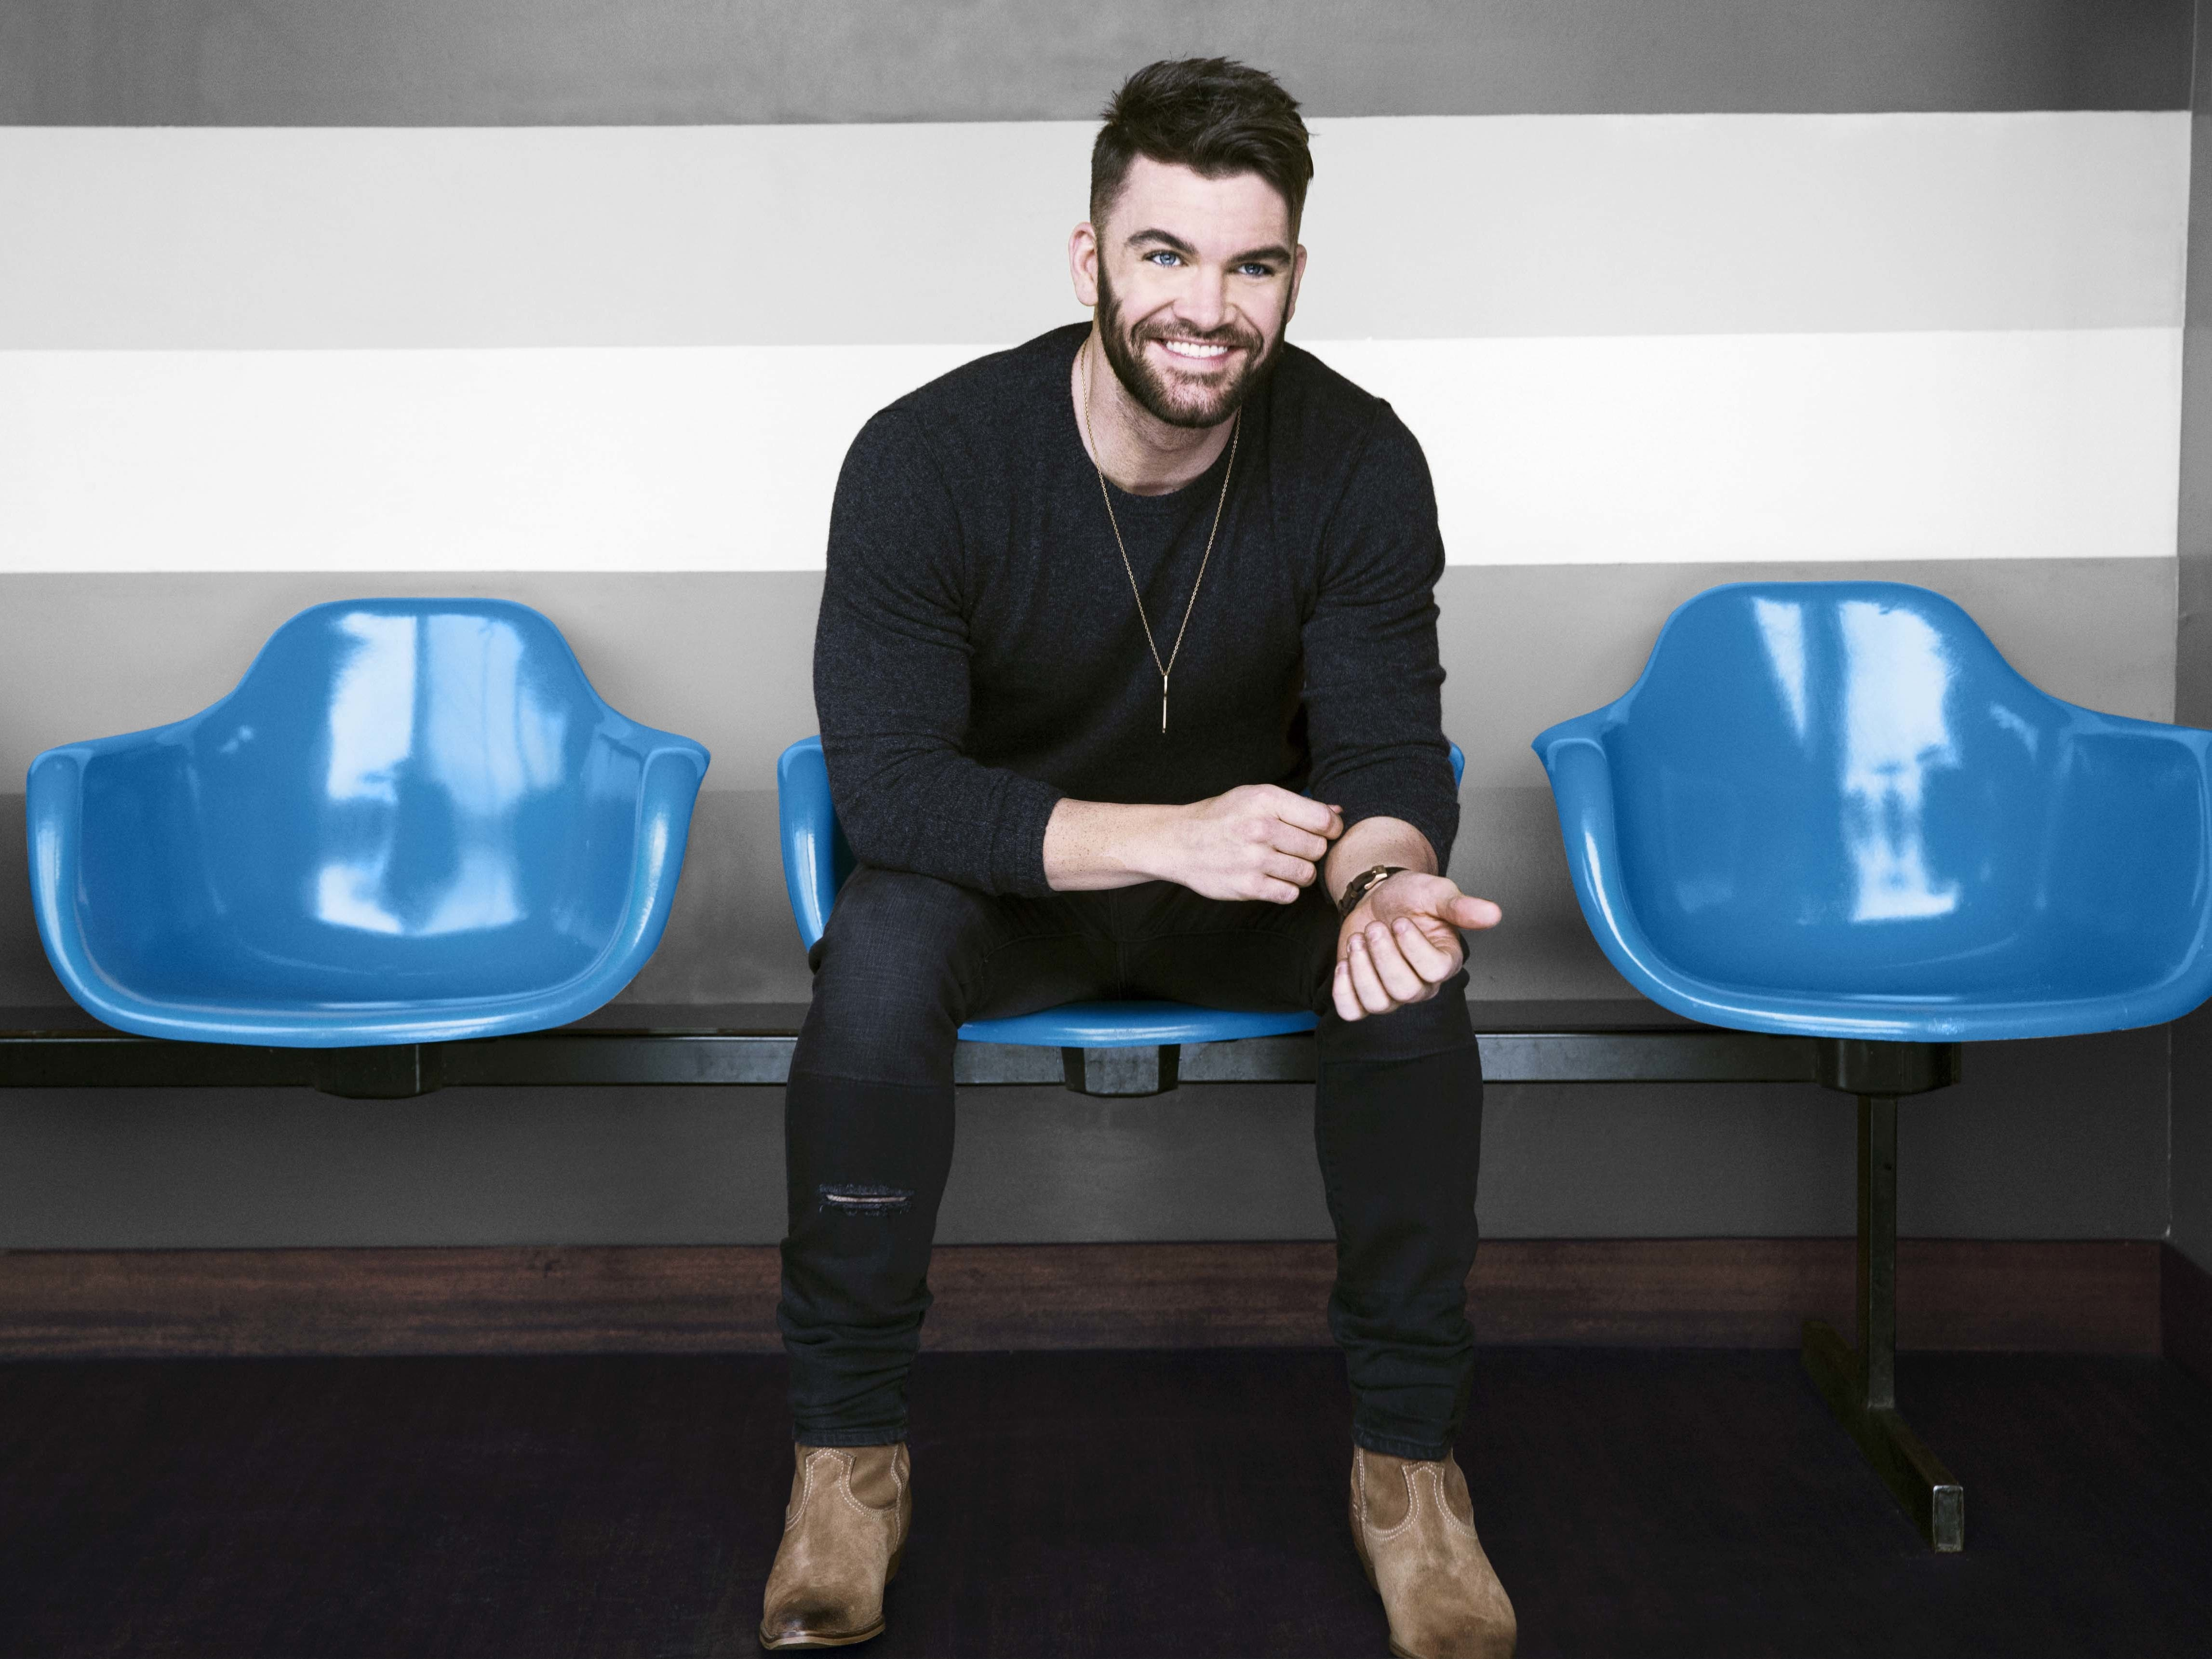 Dylan Scott is scheduled to play the Chevy Riverfront Stage at CMA Fest 2019.